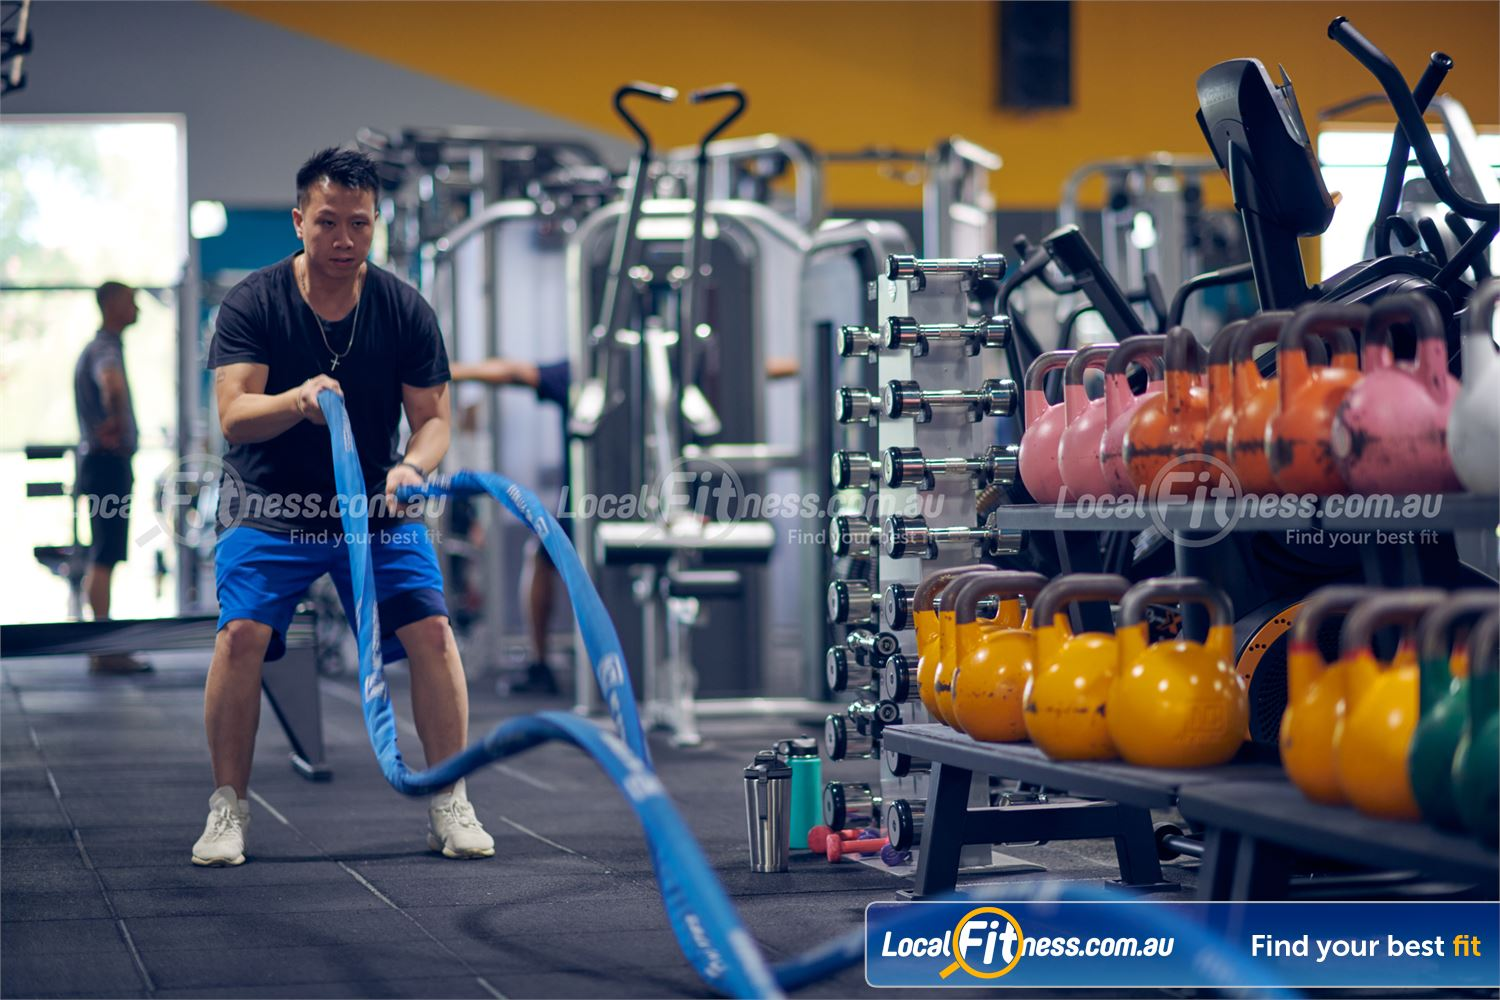 Knox Leisureworks Near Ferny Creek Our Boronia HIIT gym includes battle rope training and more.